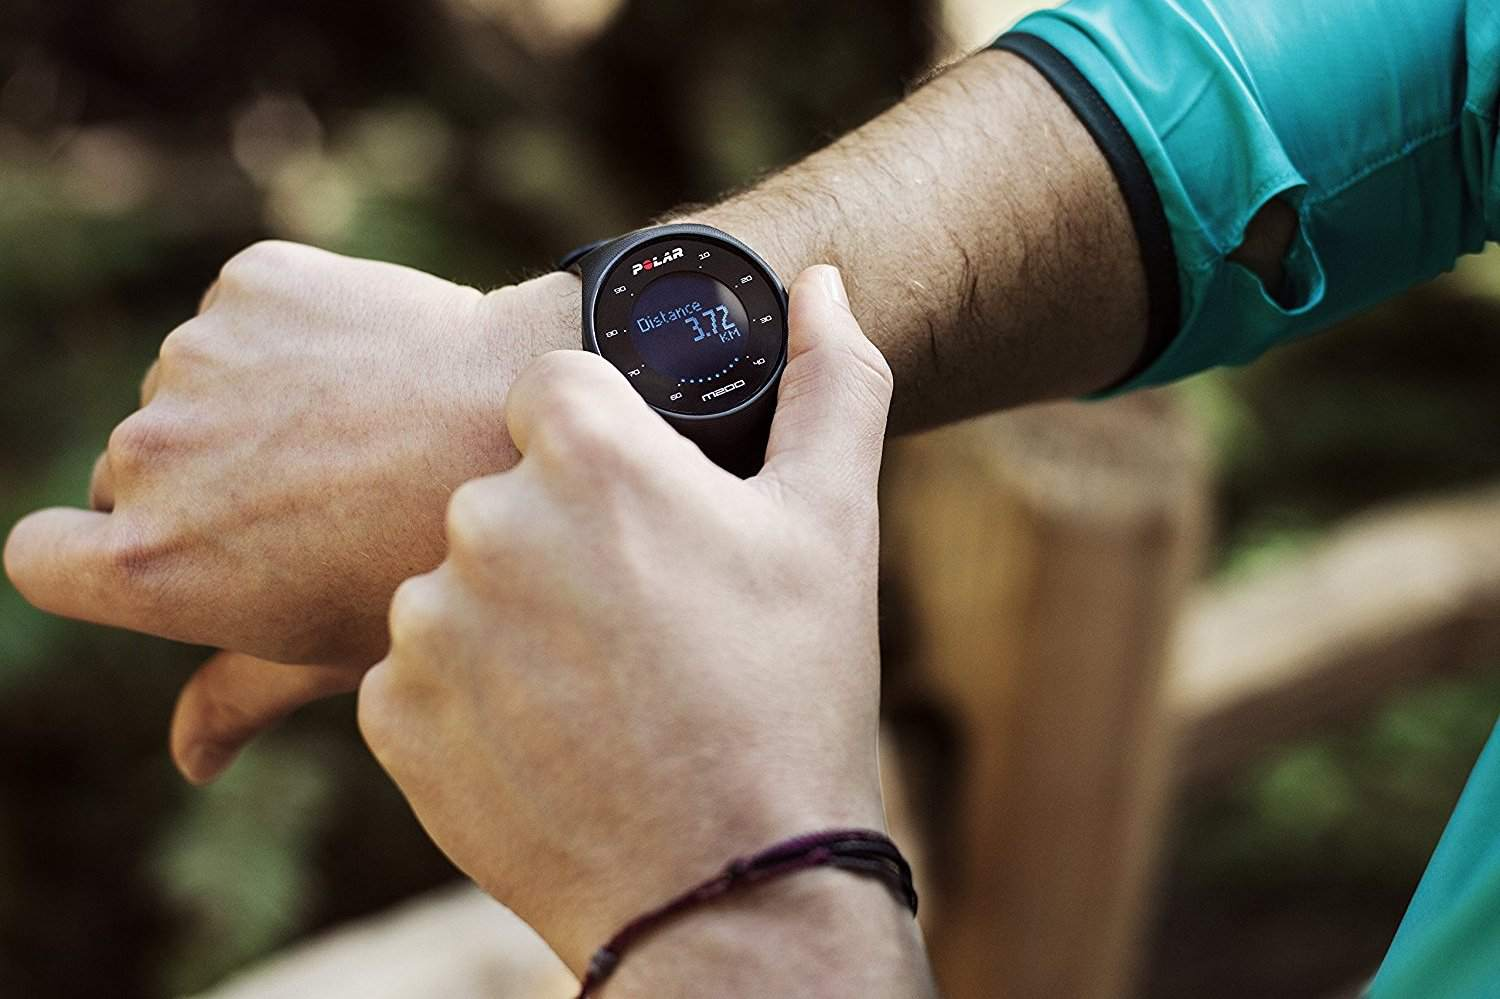 Top 5 Heart Rate Monitors for Exercise